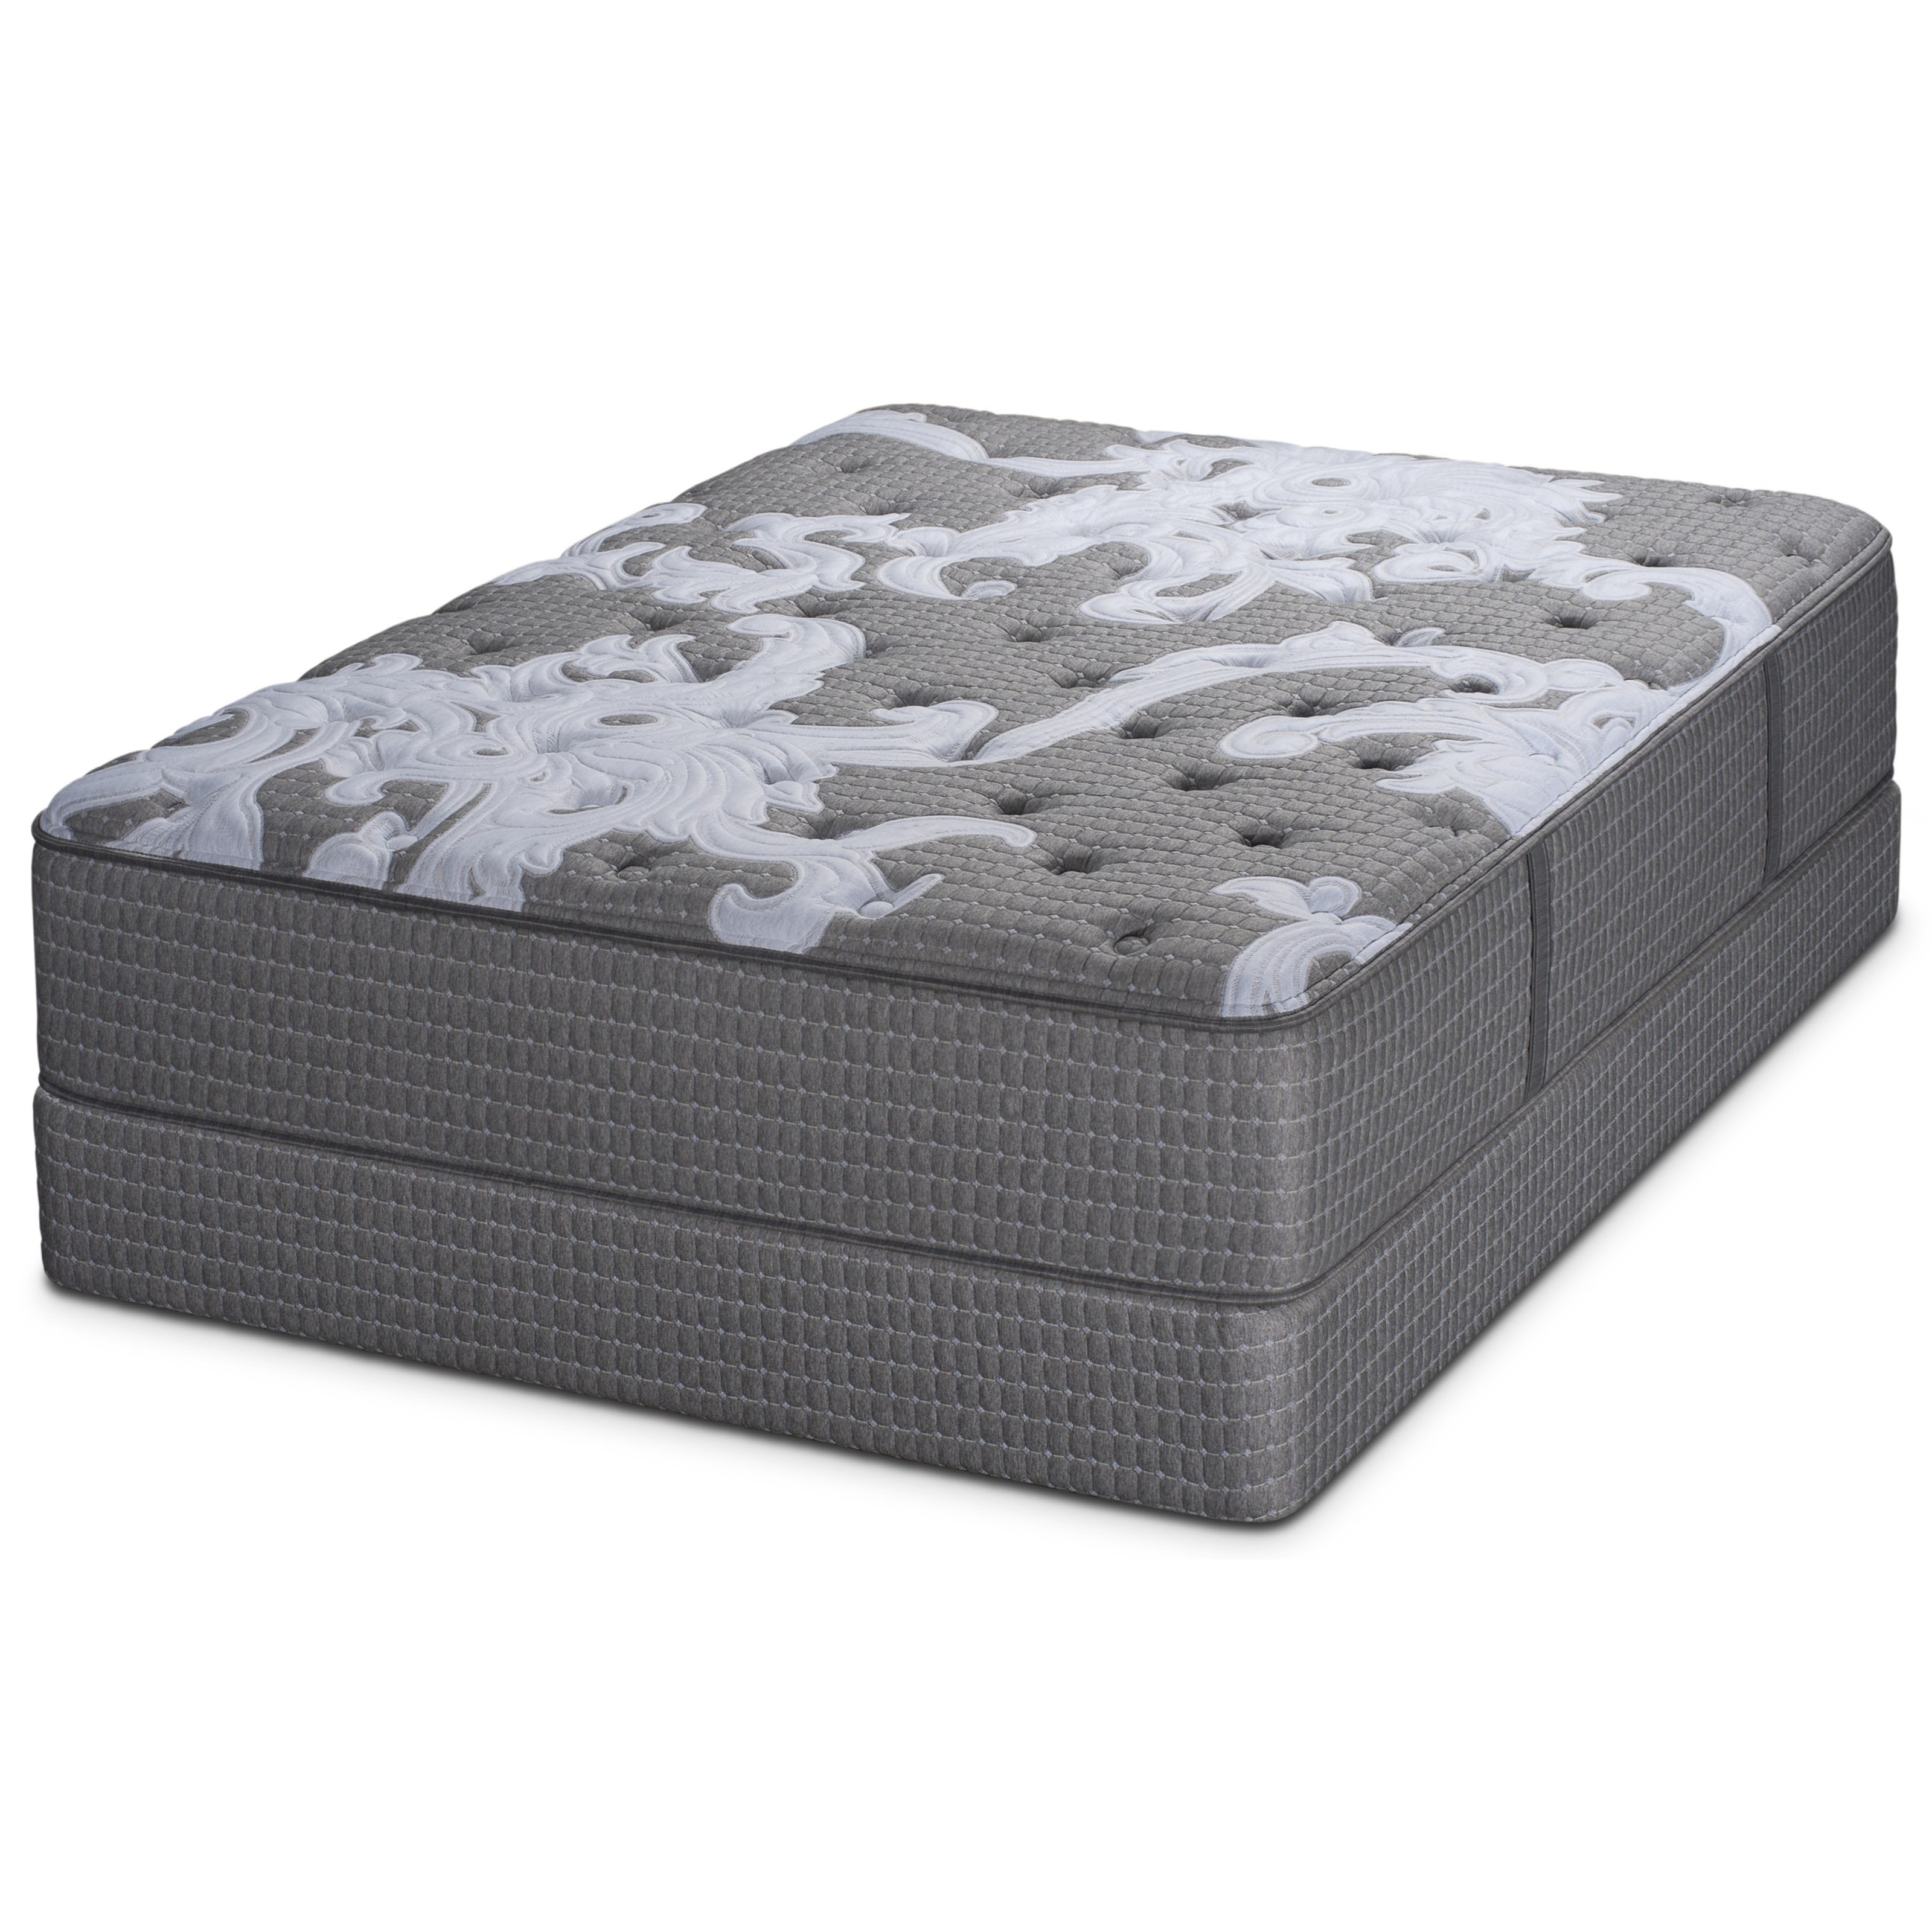 Threshold Full Pocketed Coil Mattress Set by Restonic at Wilcox Furniture